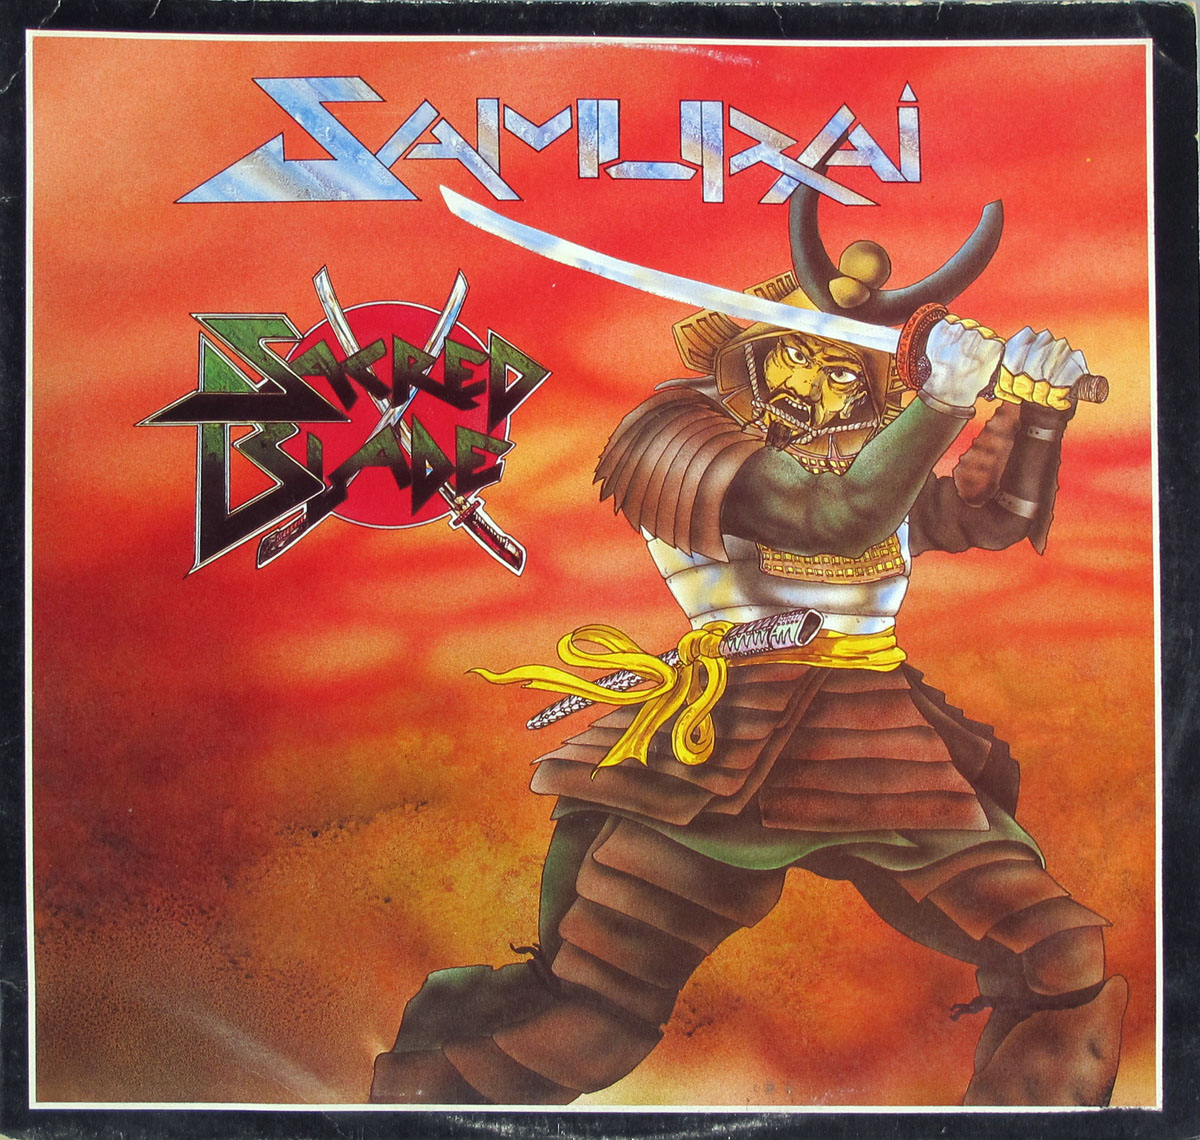 High Resolution Photo samurai sacred blade uk nwobhm